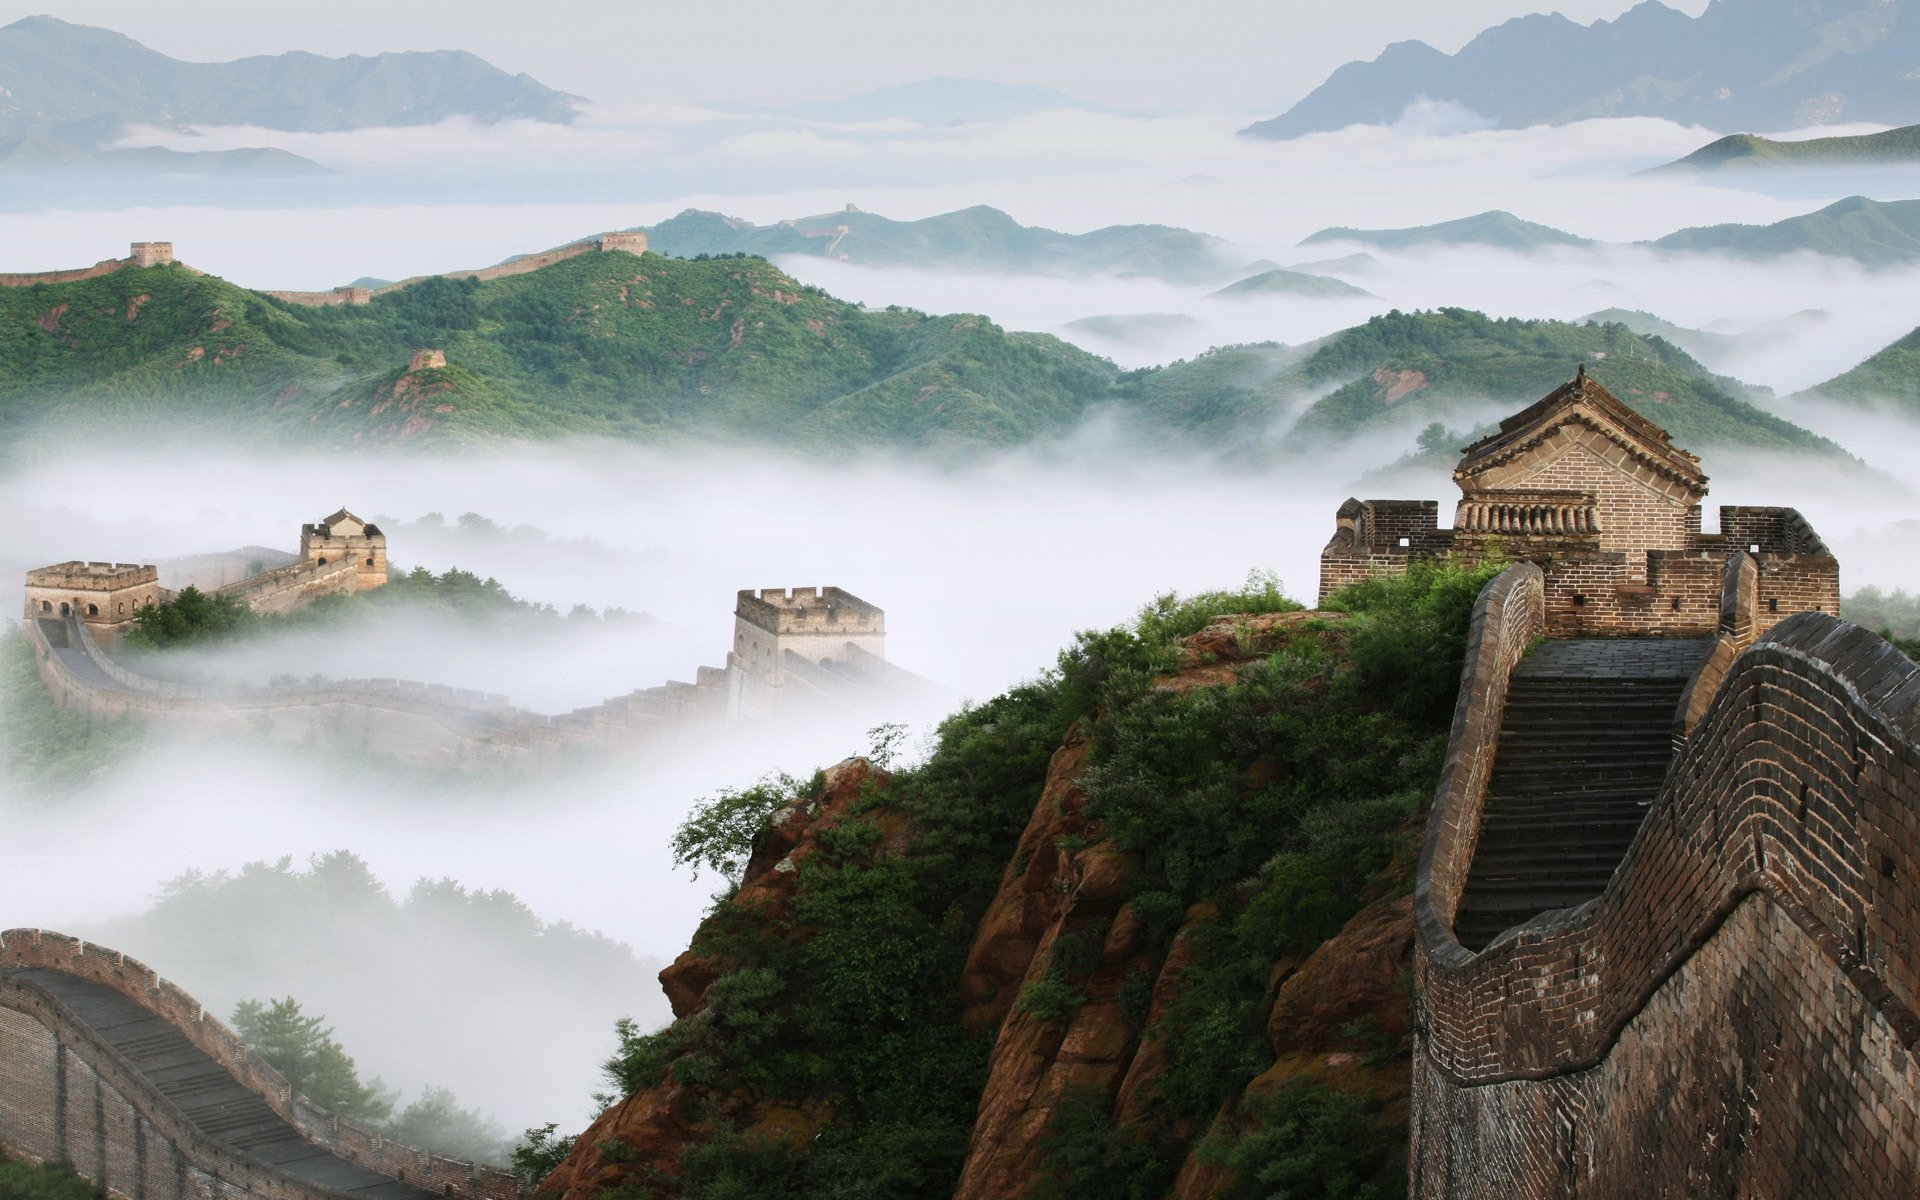 best great wall of china wallpaper id:492508 for high resolution hd